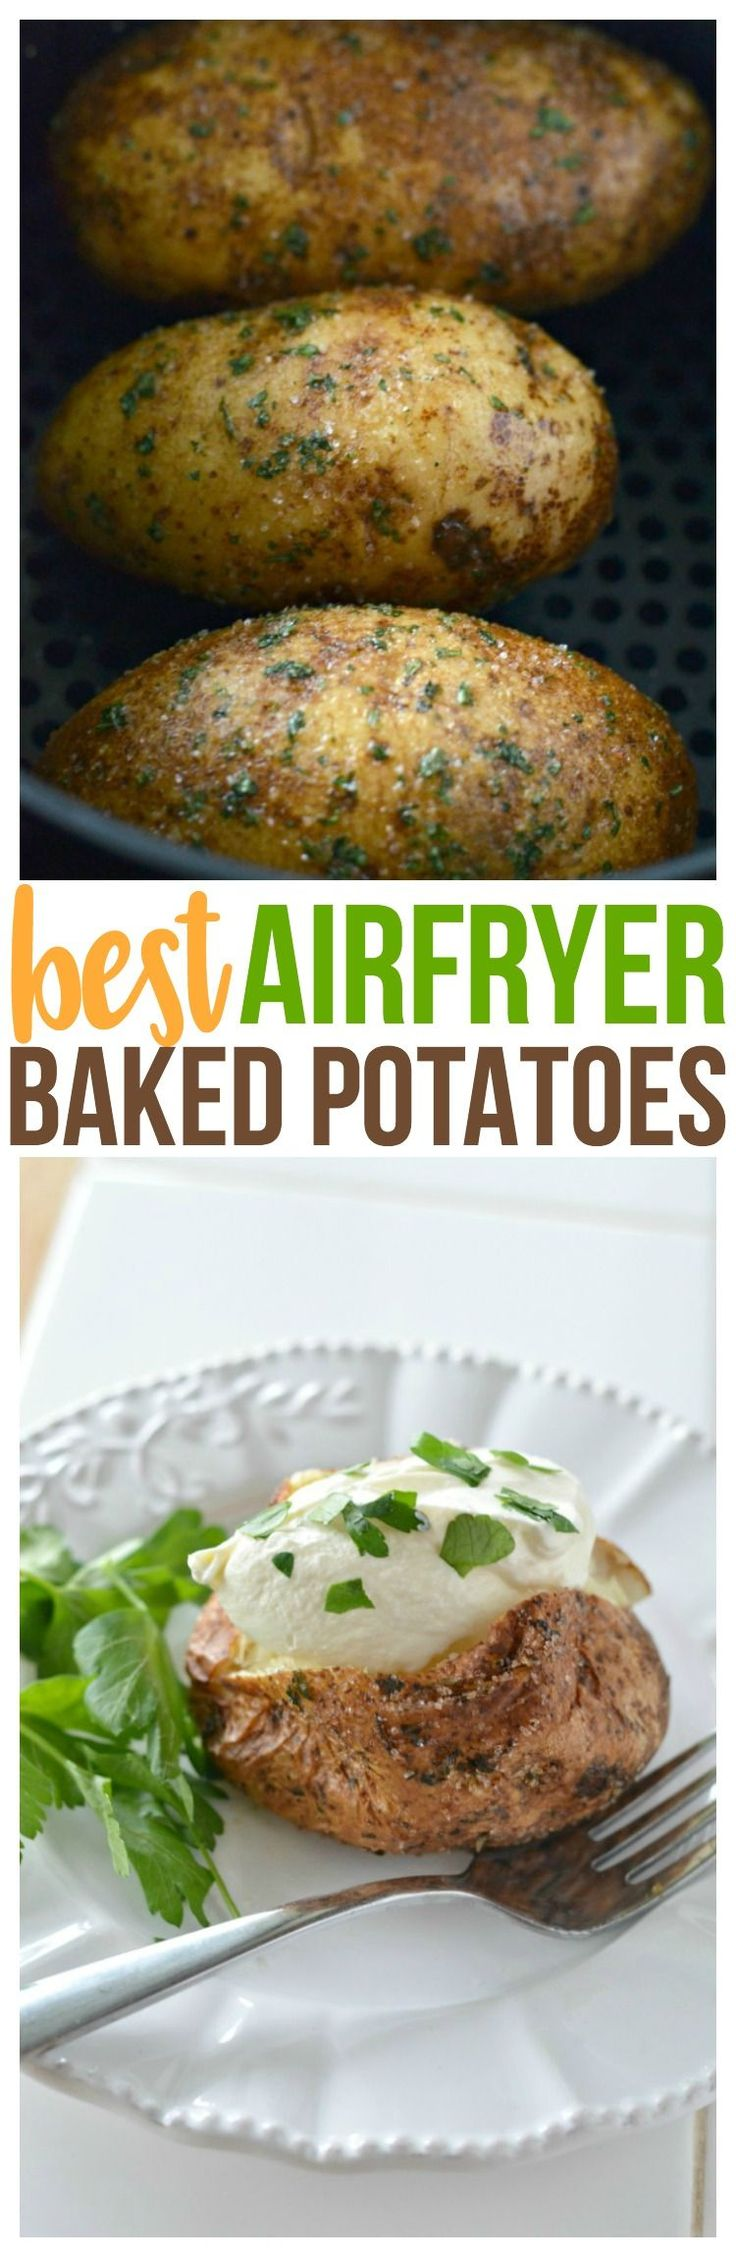 How to Make a Baked Potato - Air Fryer Baked Garlic Parsley Potatoes for the best side dish recipe in just 35 minutes for your family meals. via @CourtneysSweets